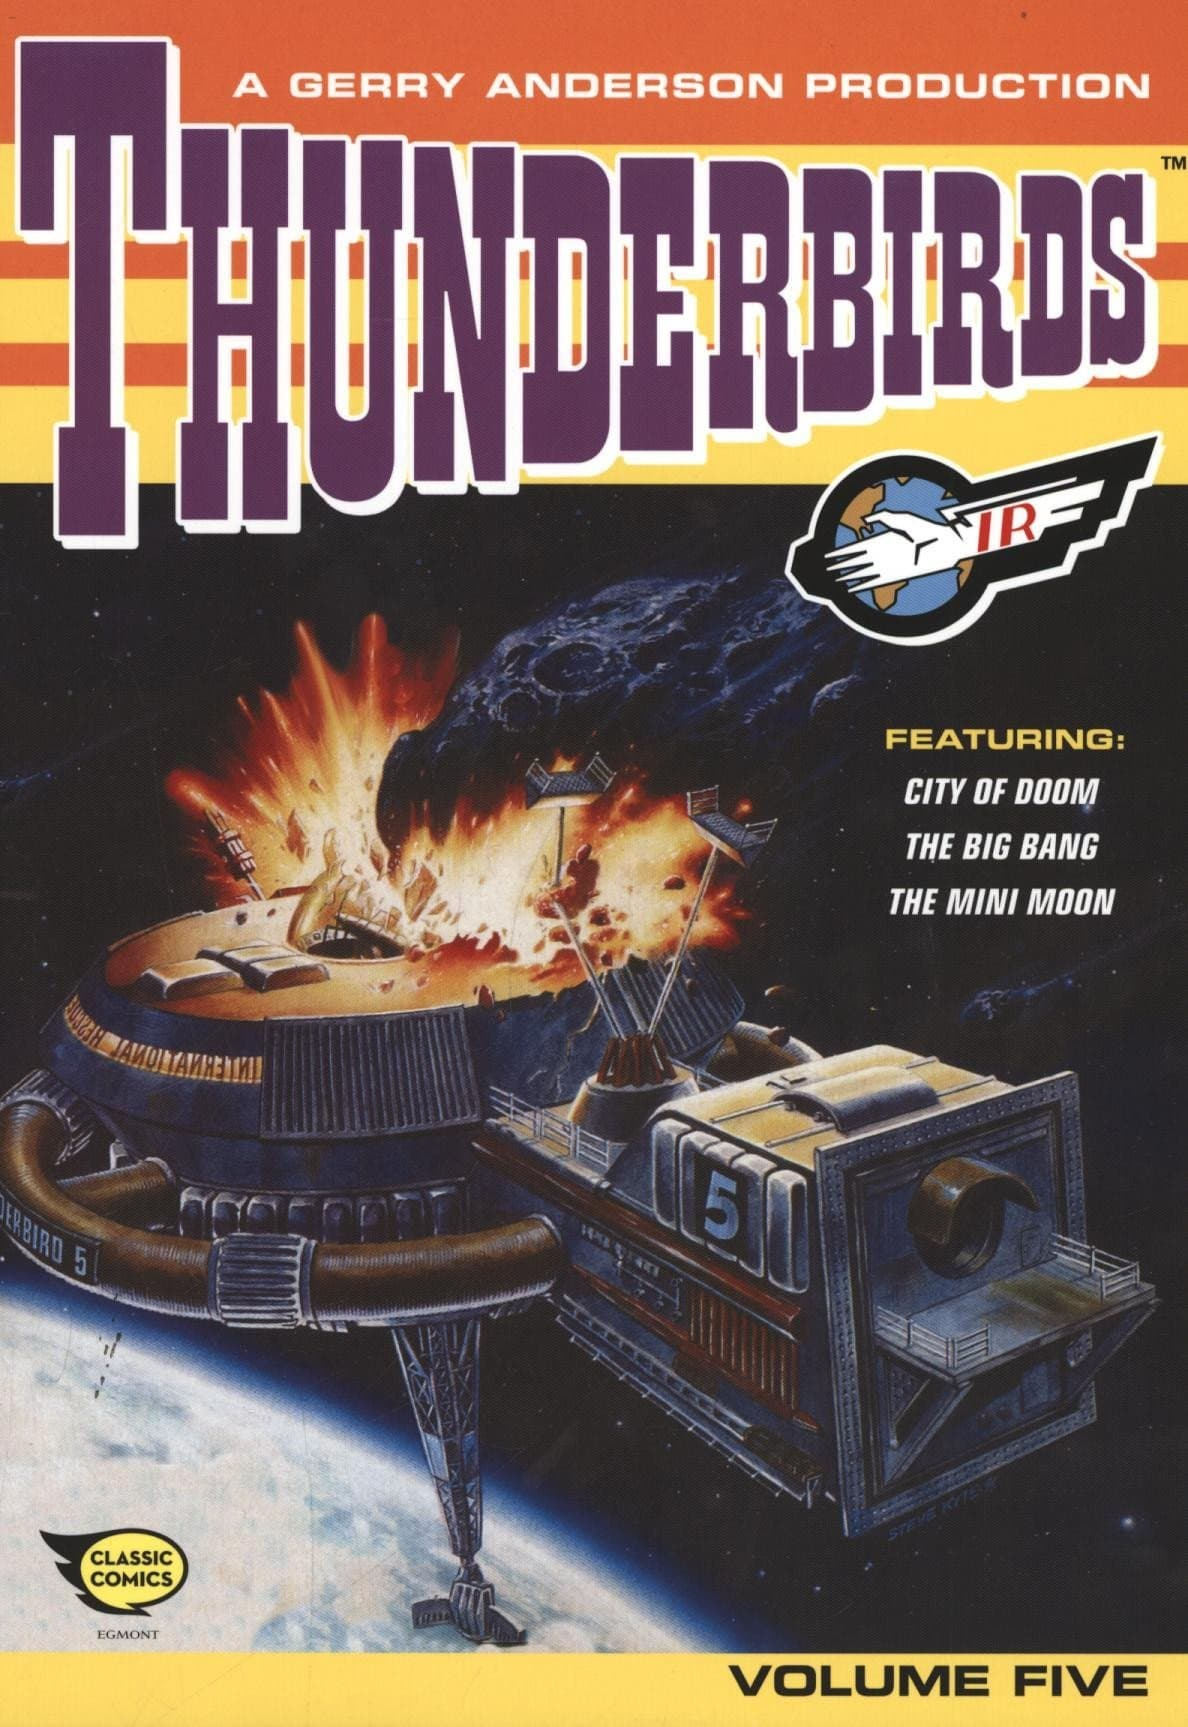 Thunderbirds Comic Collection Vol 5 - Gerry Anderson Official